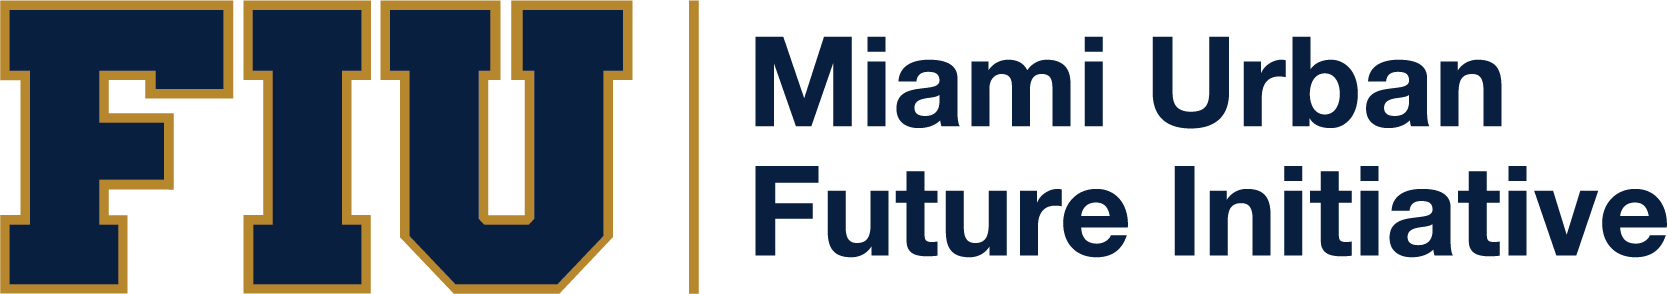 Miami Urban Future Initiative Logo